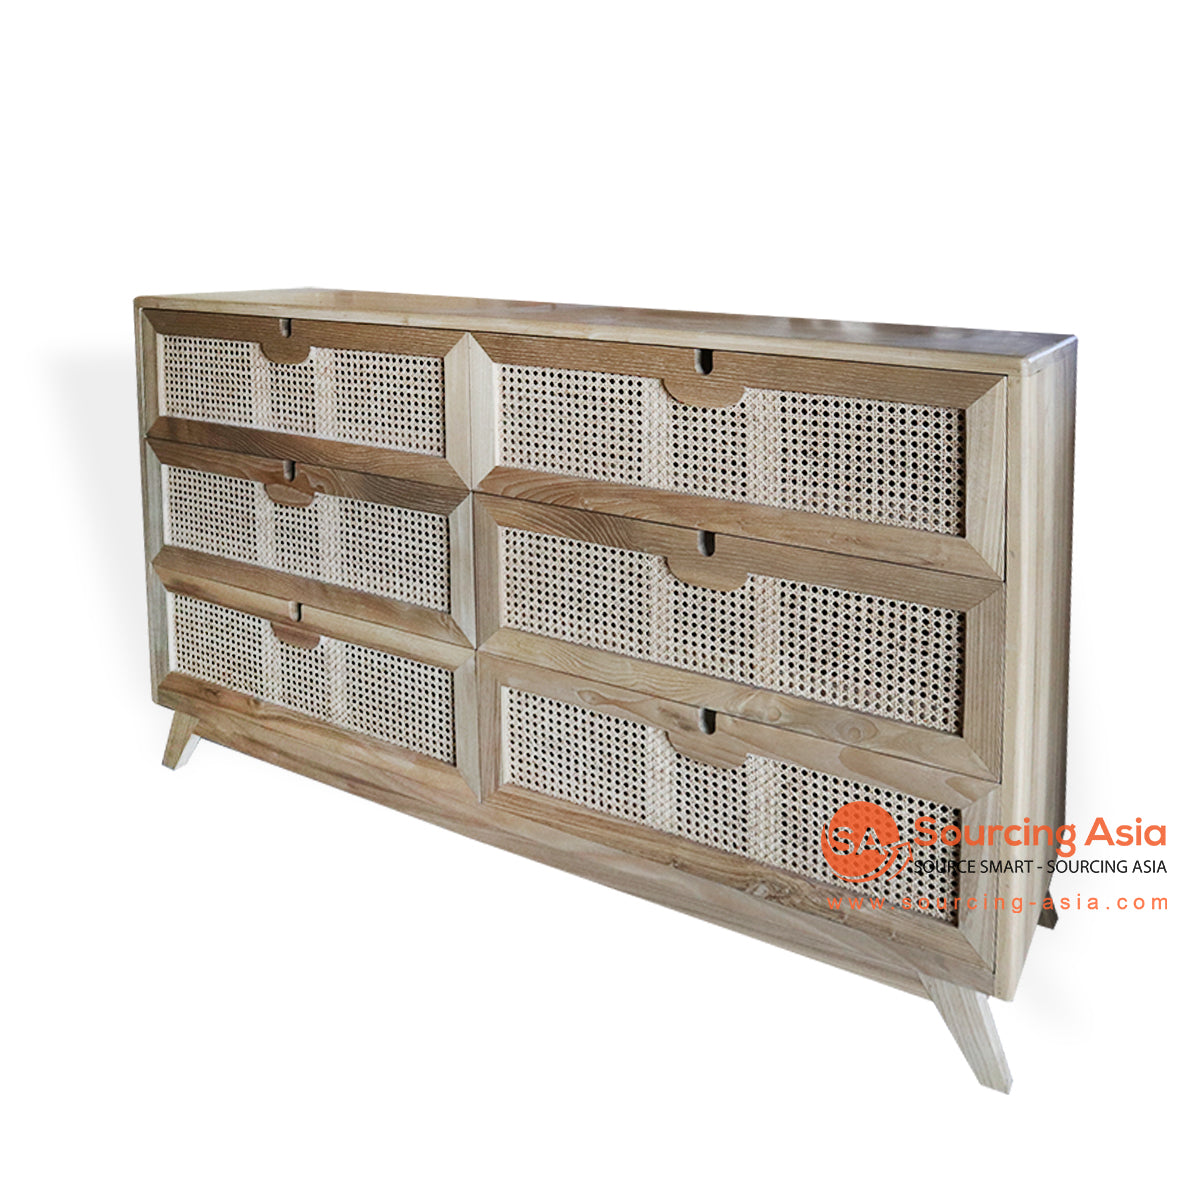 BNTC020-4 RATTAN CABINET WITH 6 DRAWER